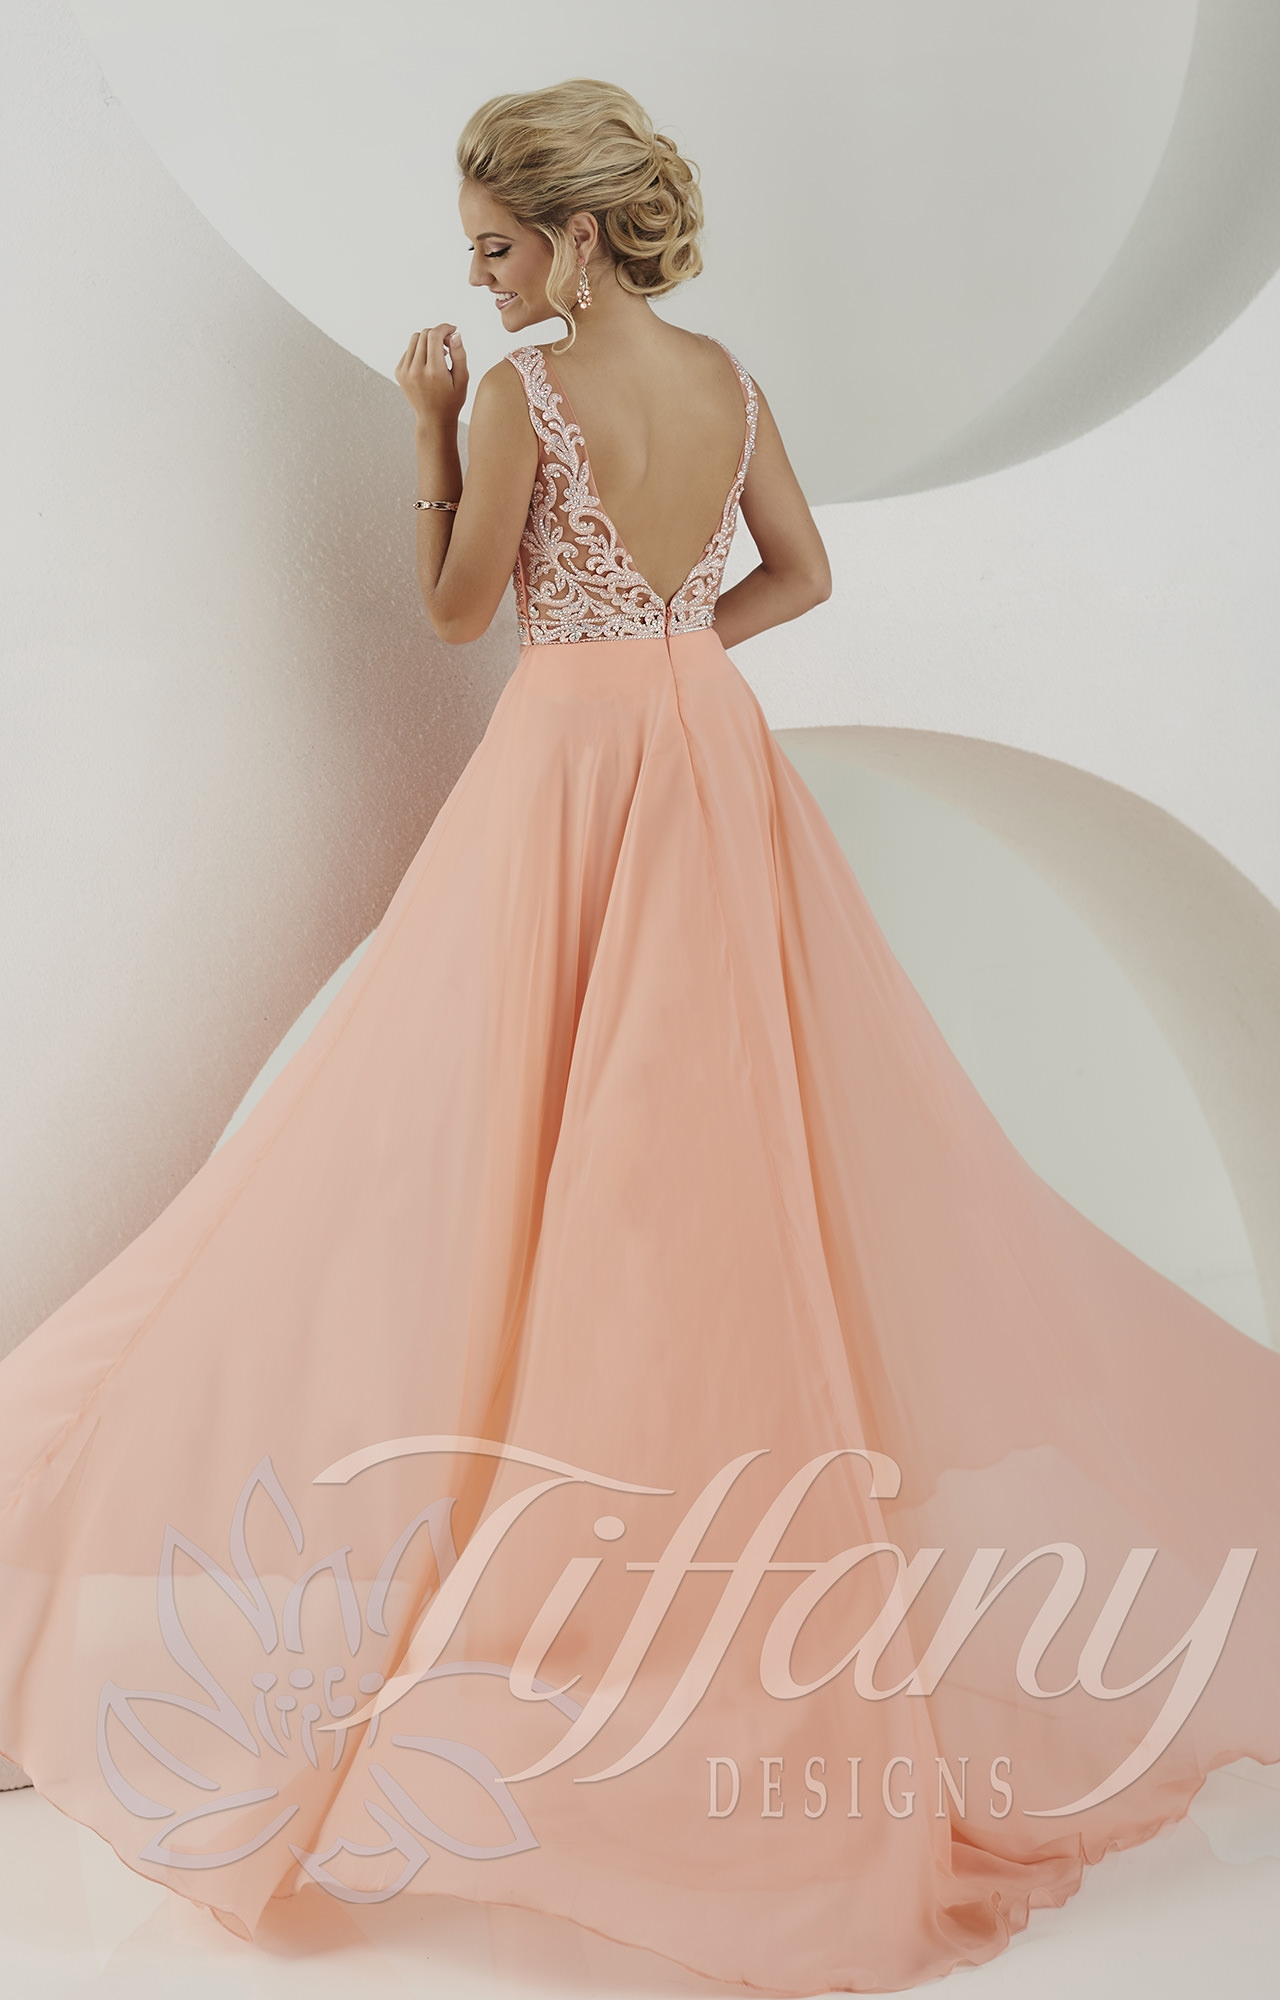 Tiffany Designs 16153 - Your Guardian Angel Gown Prom Dress